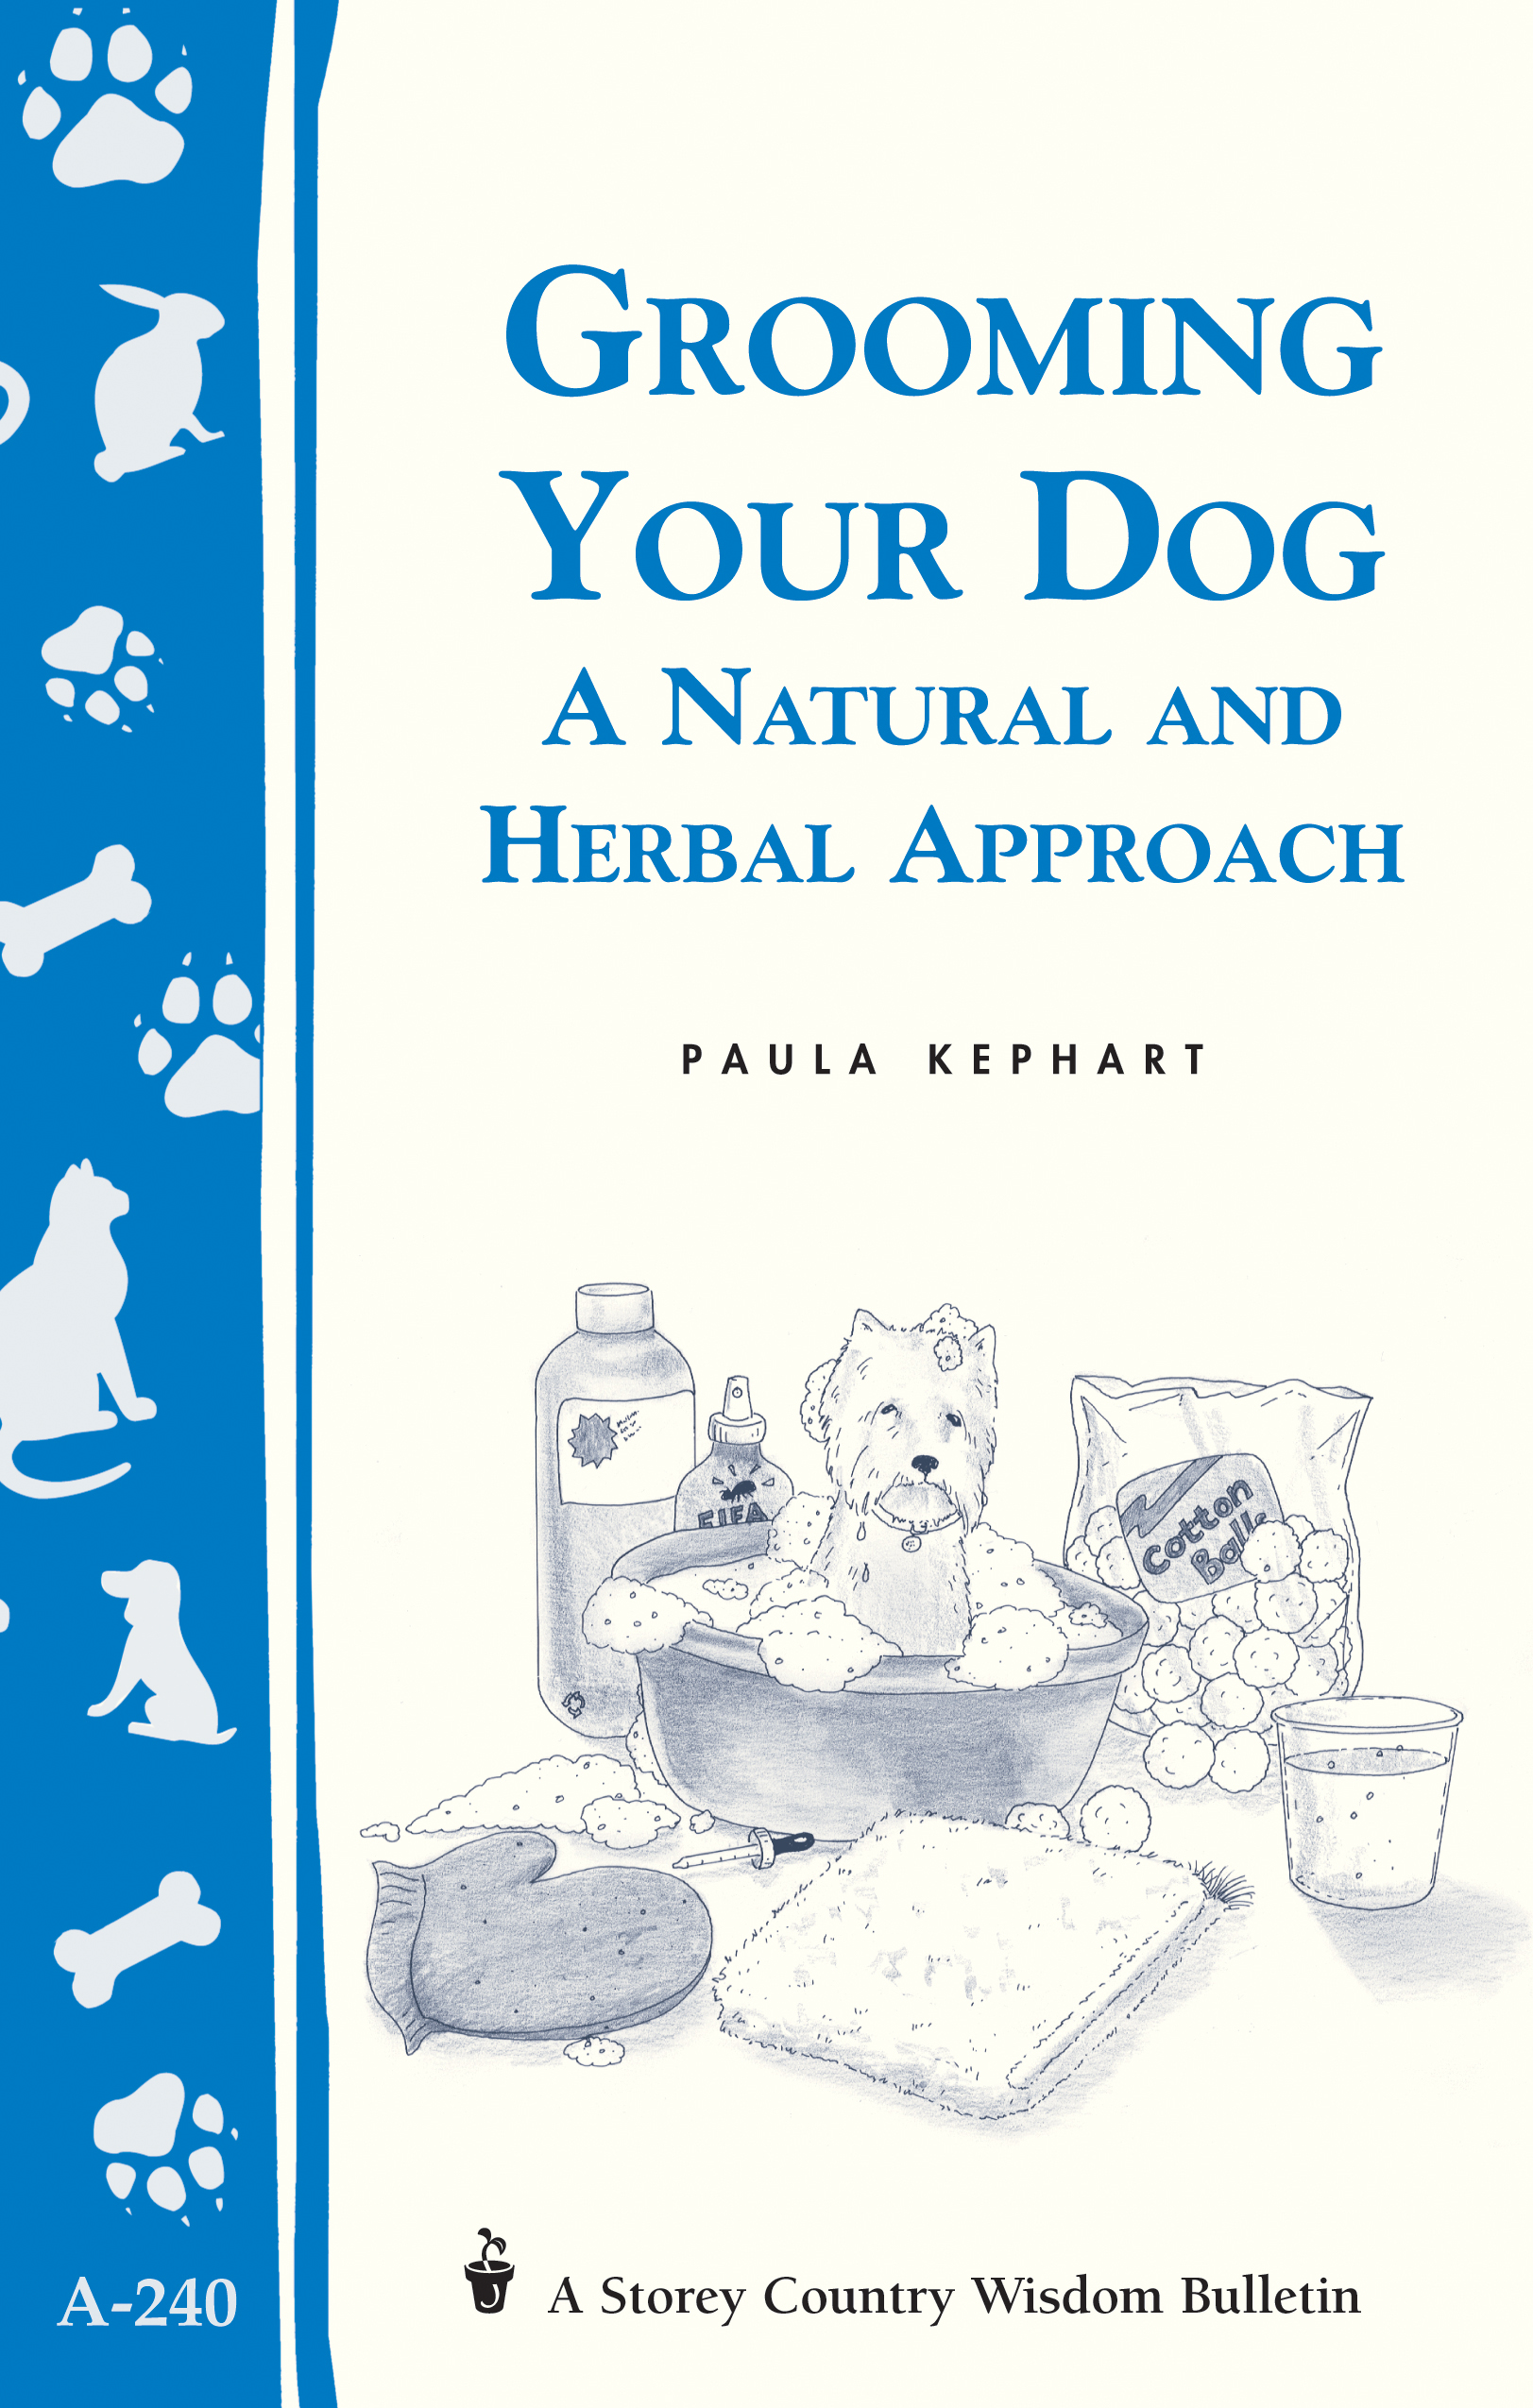 Grooming Your Dog A Natural and Herbal Approach/Storey's Country Wisdom Bulletin A-240 - Paula Kephart